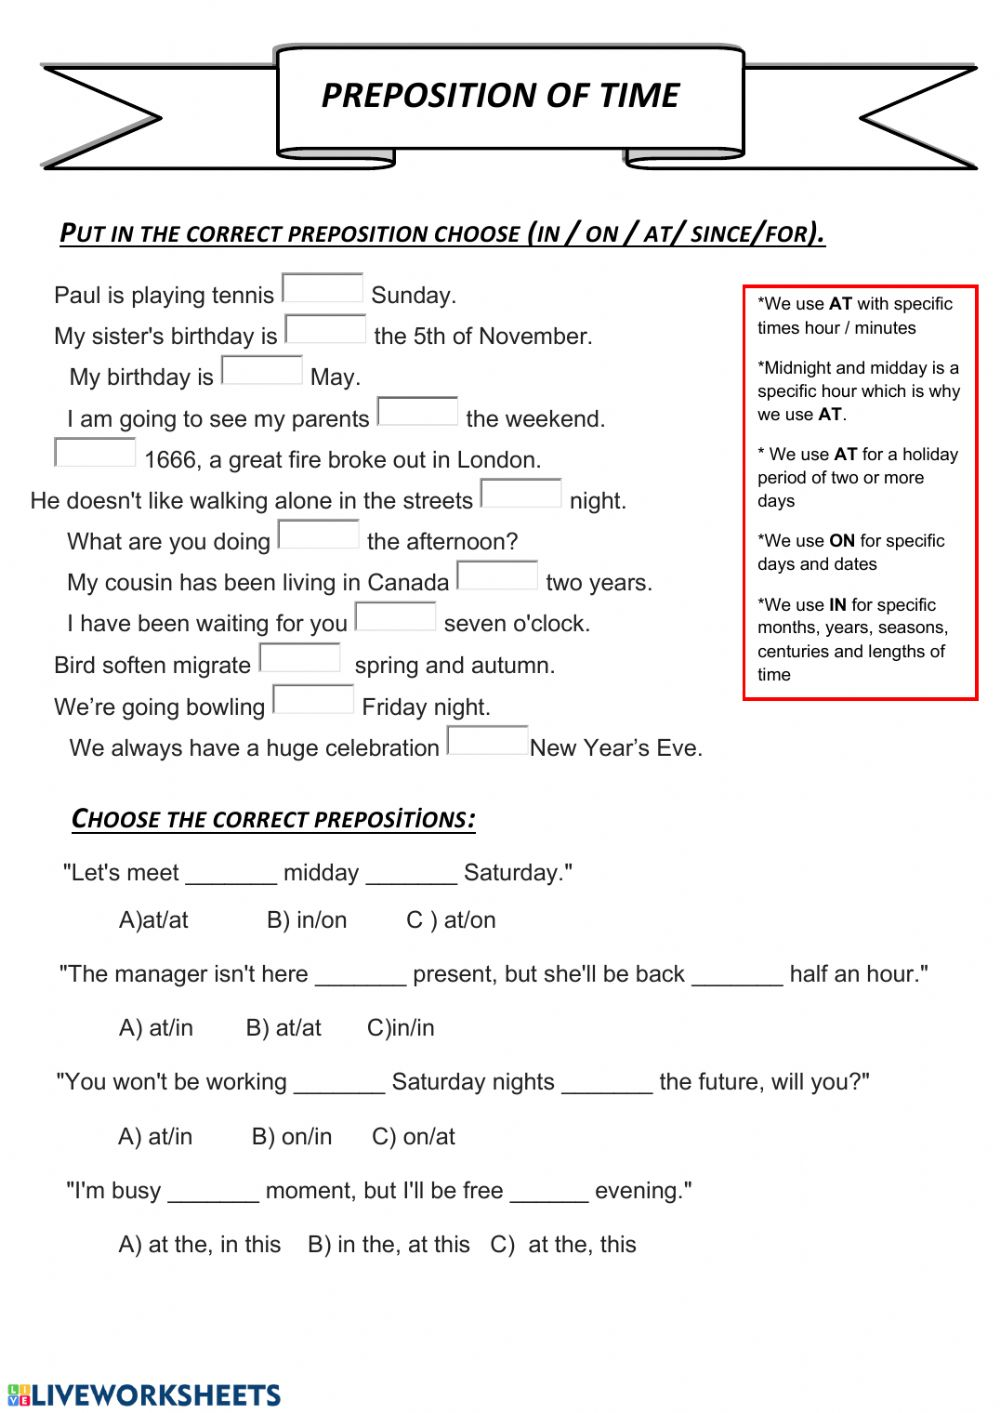 hight resolution of Preposition of time worksheet